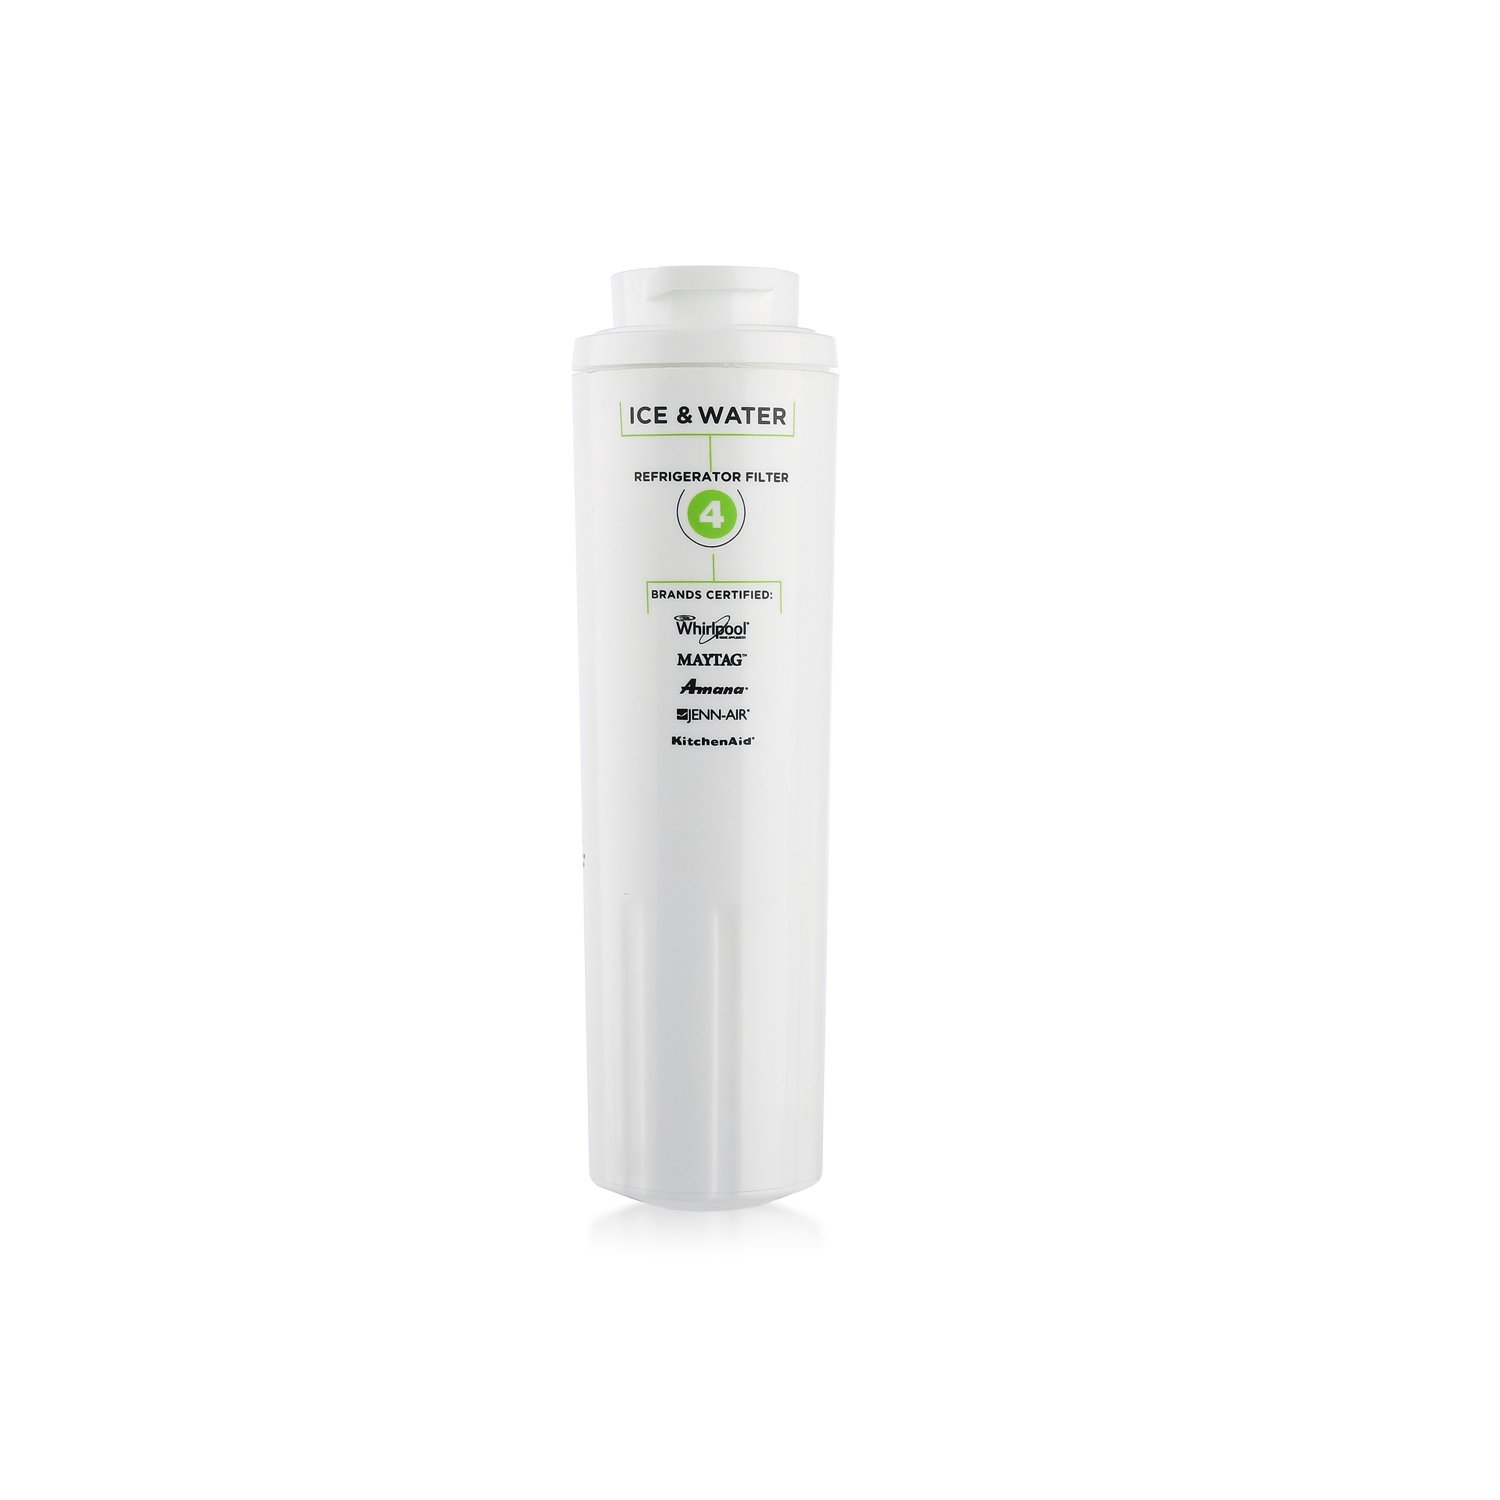 1 Count Refrigerator Water Filters 4 4396-/395 Replacement Water Filter for Kenmore 9084